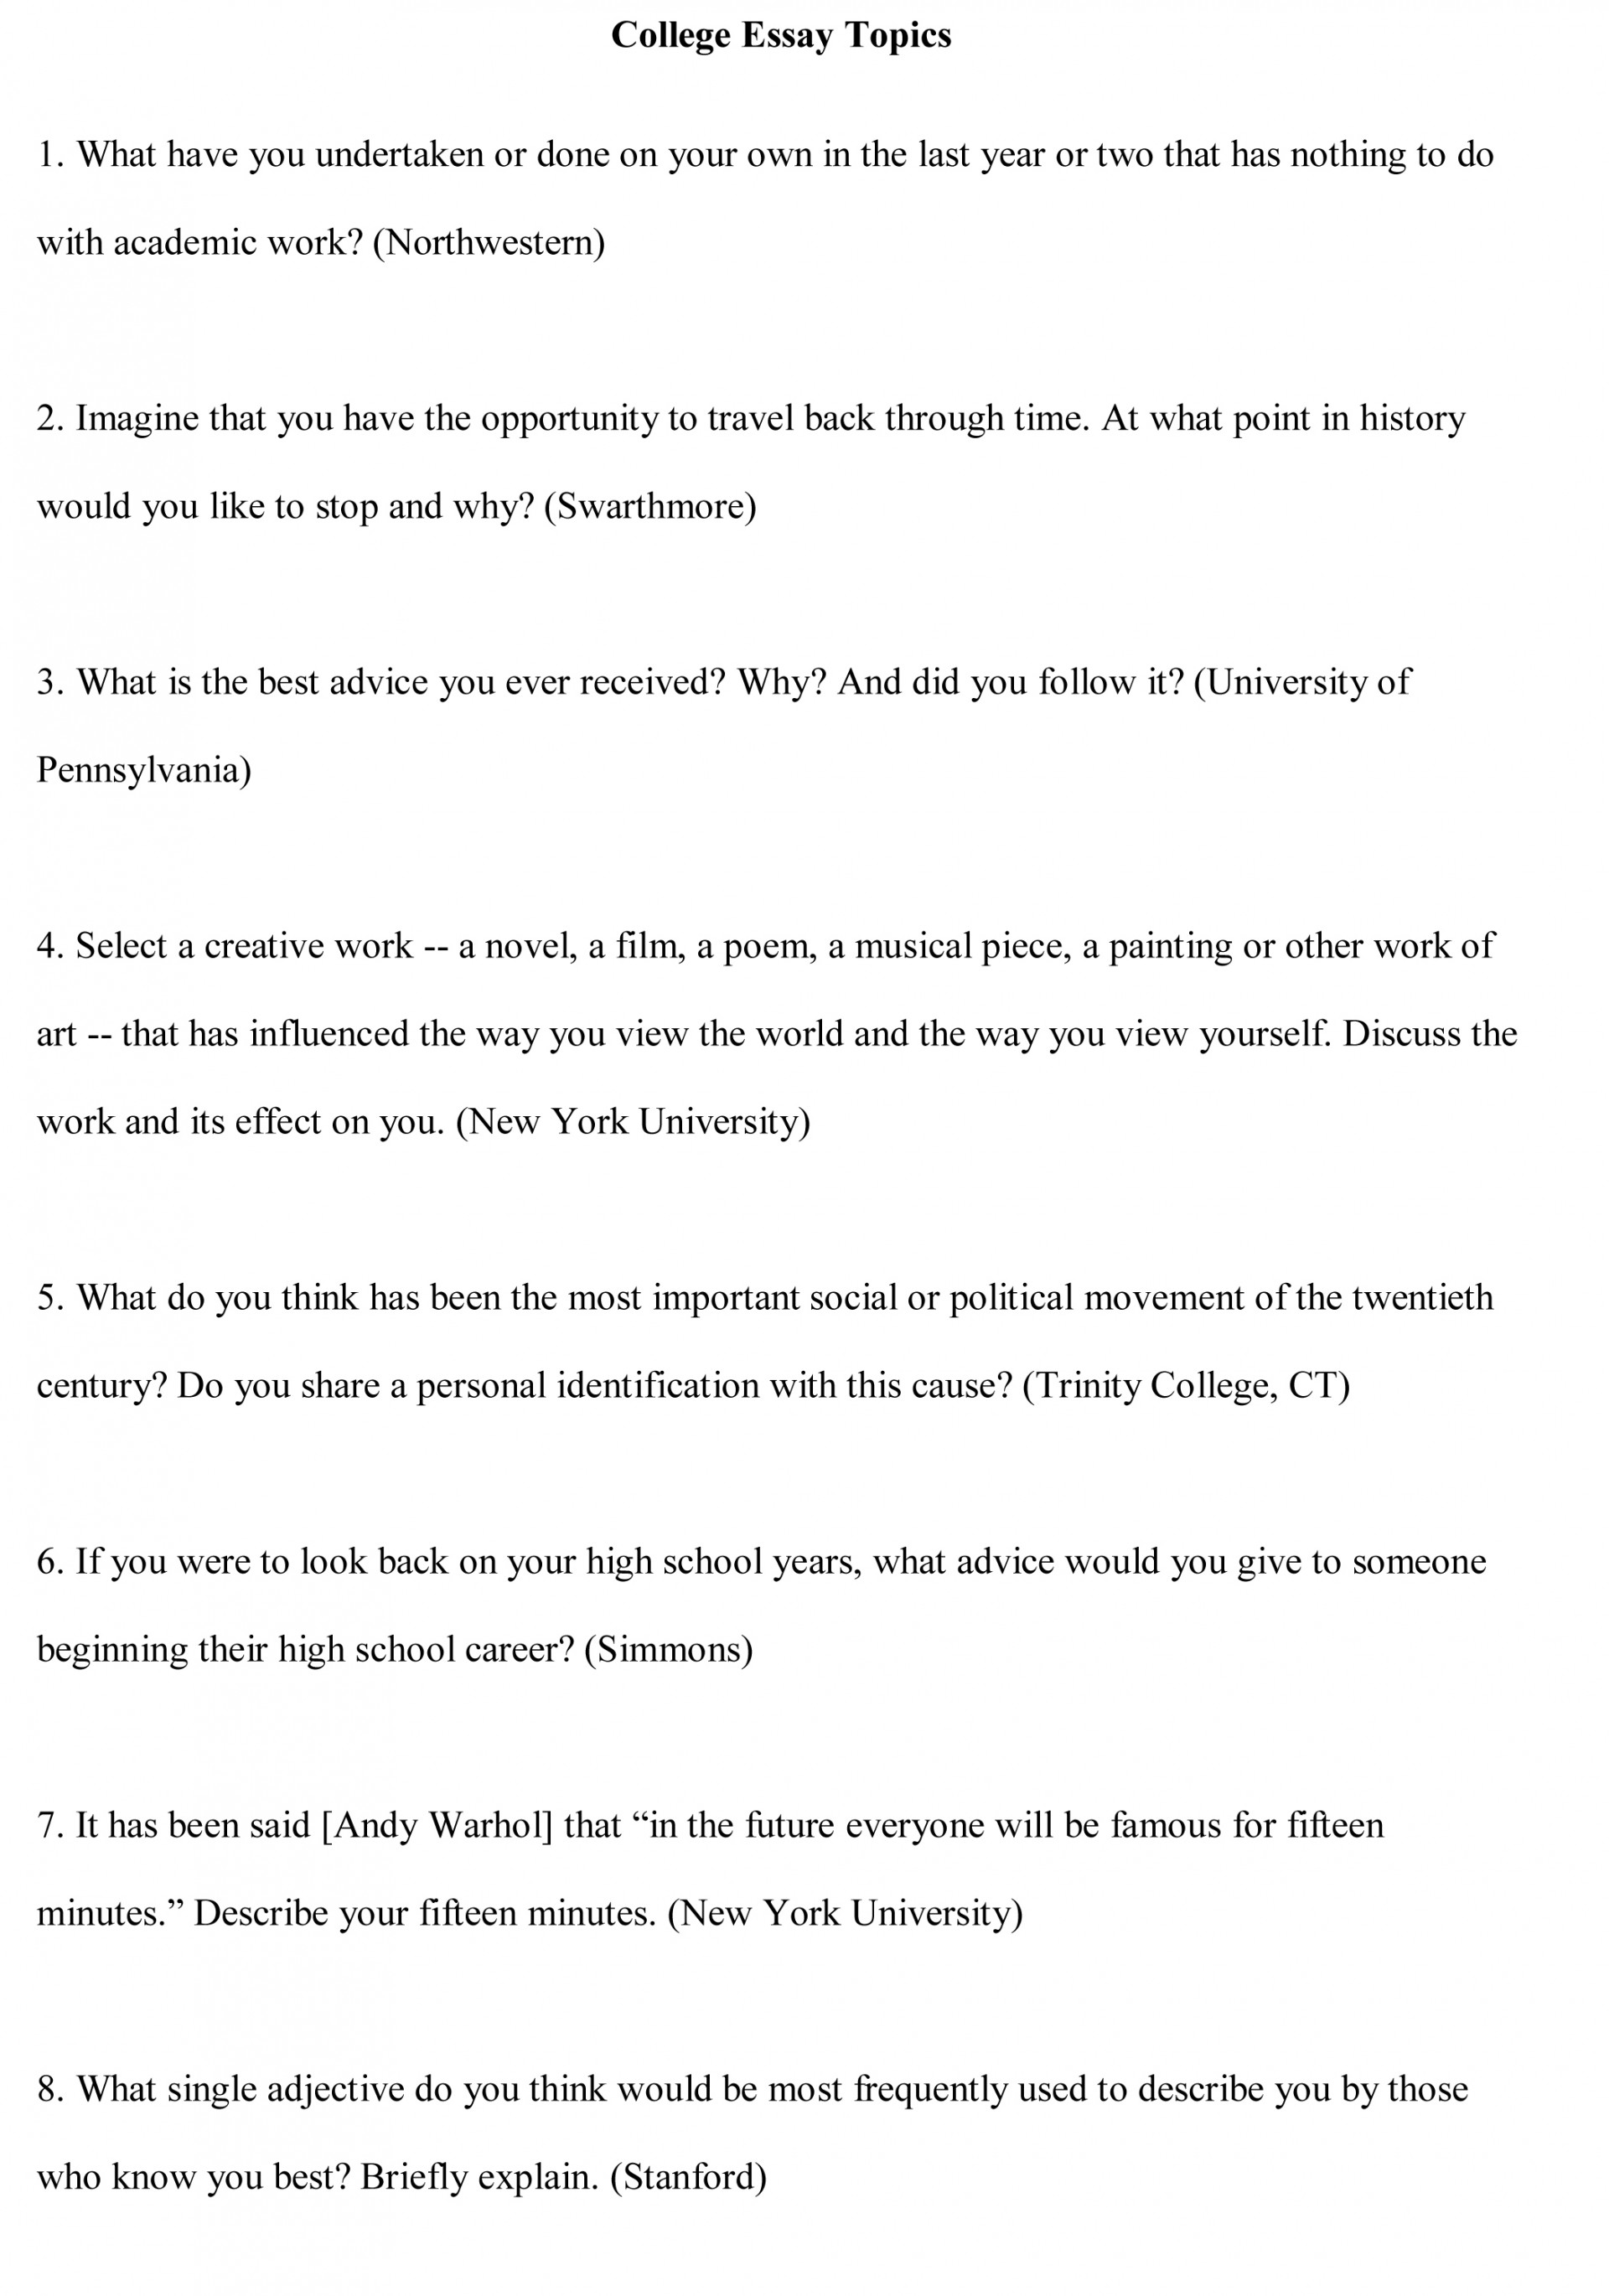 005 Good Research Paper Topics For College English Essay Free Dreaded Class 1920